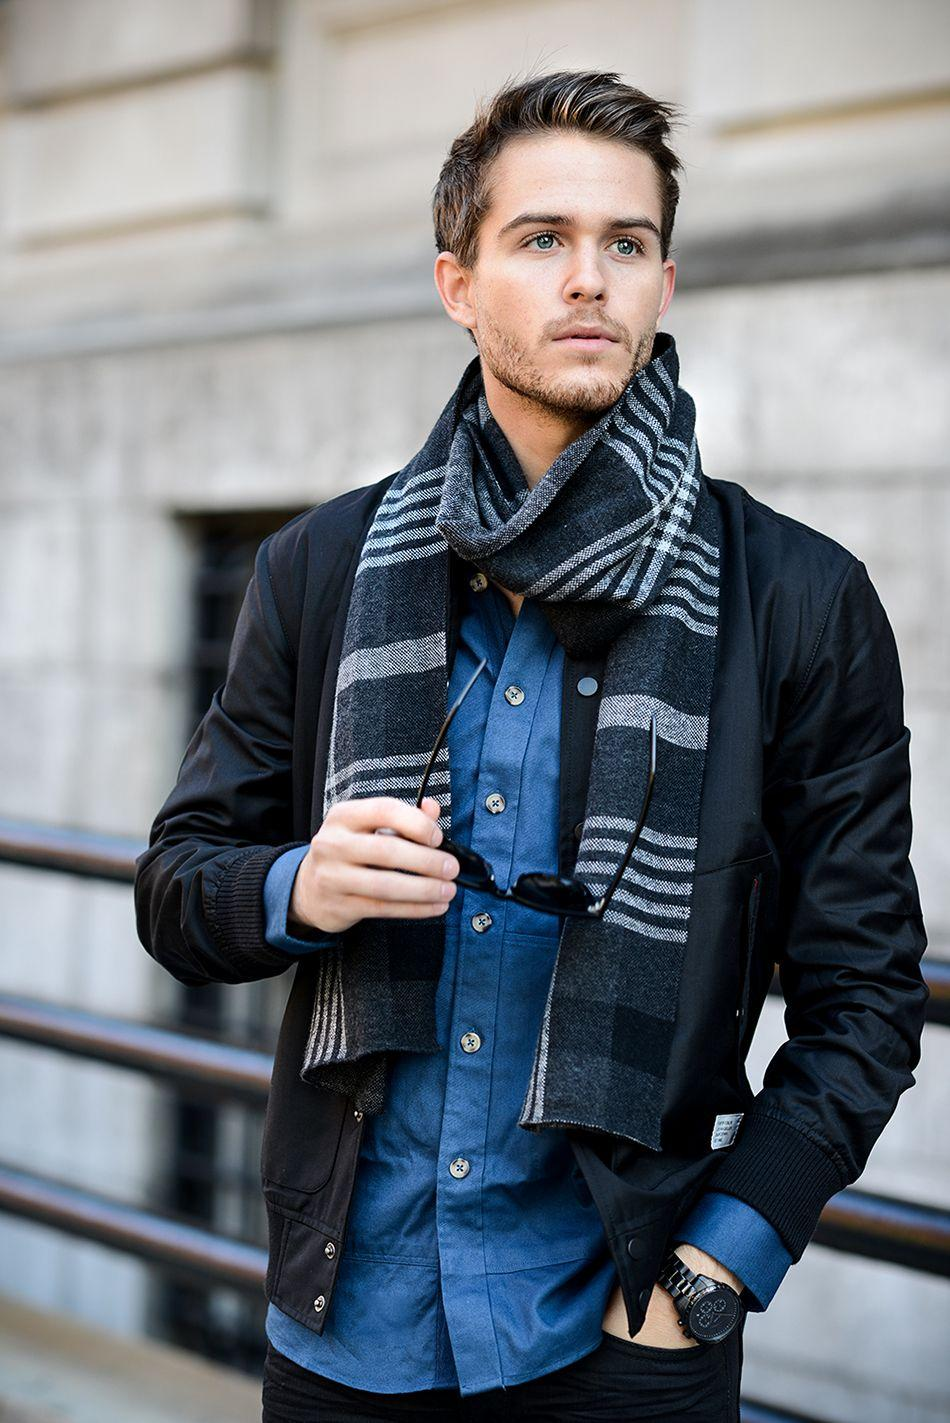 Classy grey scarf makes the casual look stunning